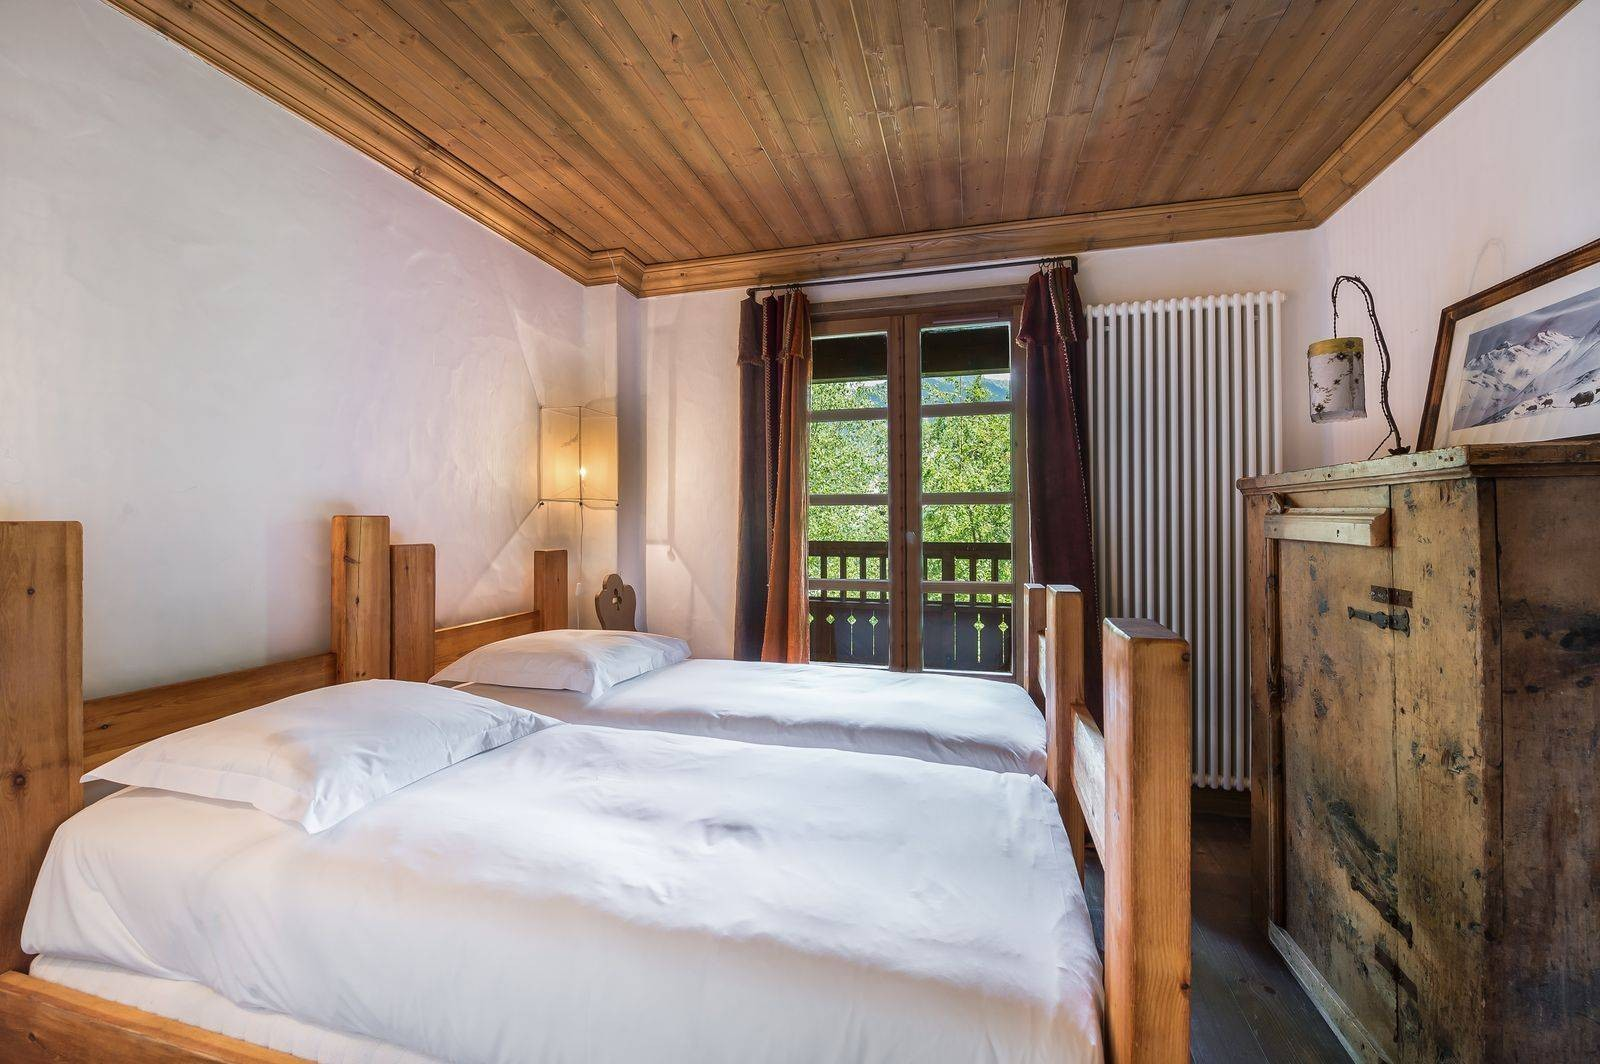 Courchevel 1550 Location Chalet Luxe Tazoy Chambre 5